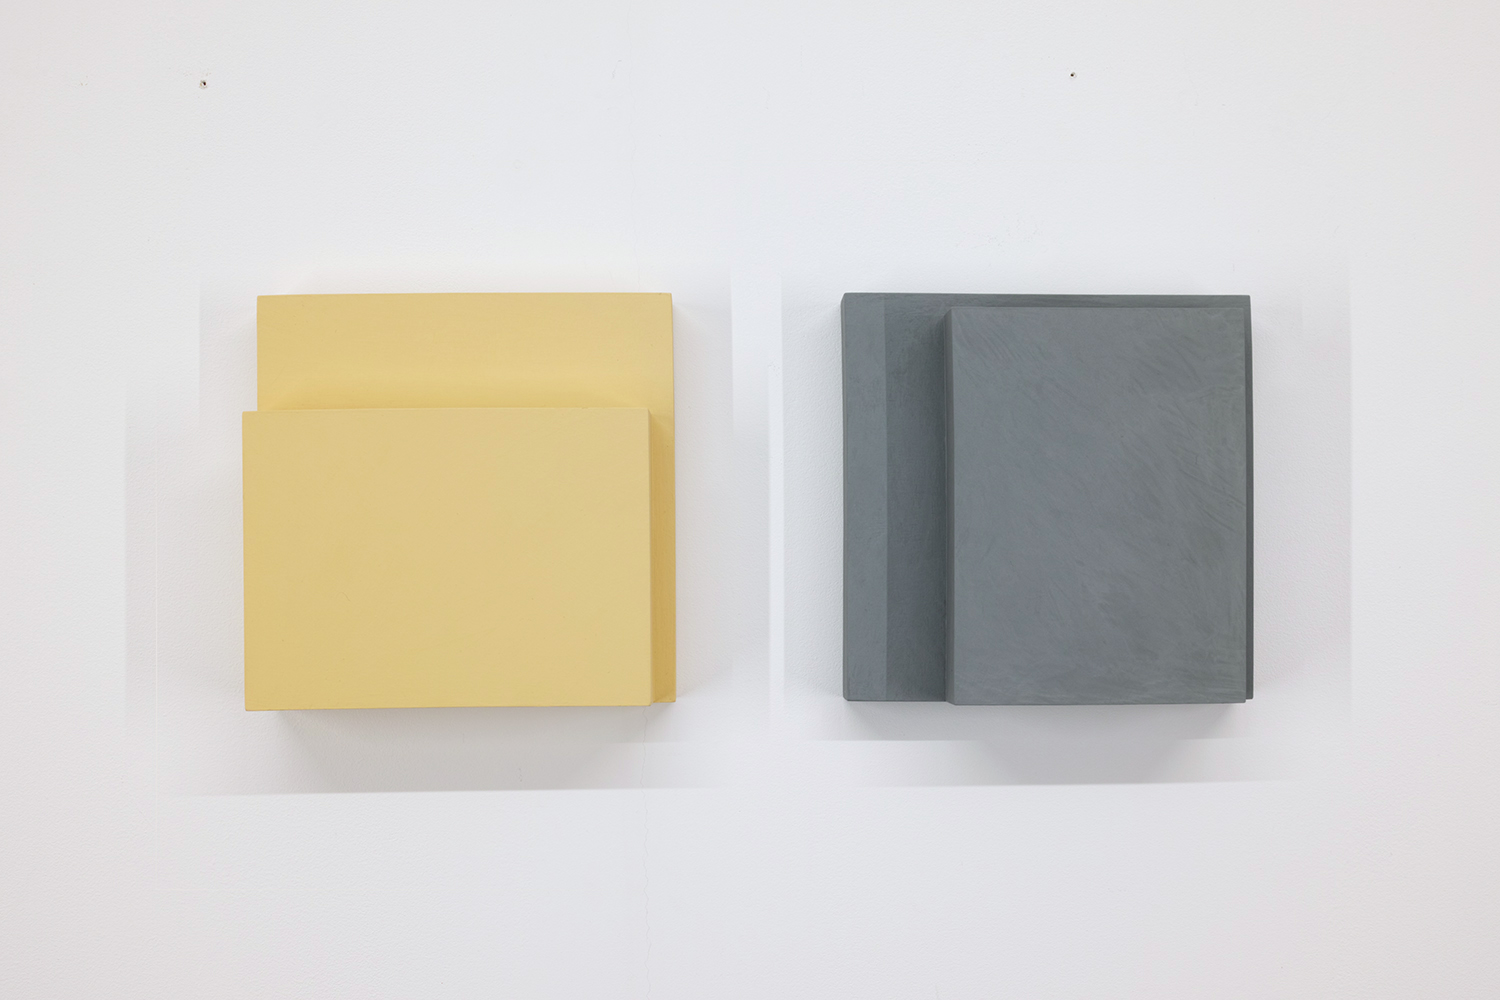 TS170 /1705<br>Colour Gesso on Panel, 20 x 20 cm each (set of 2), 2017